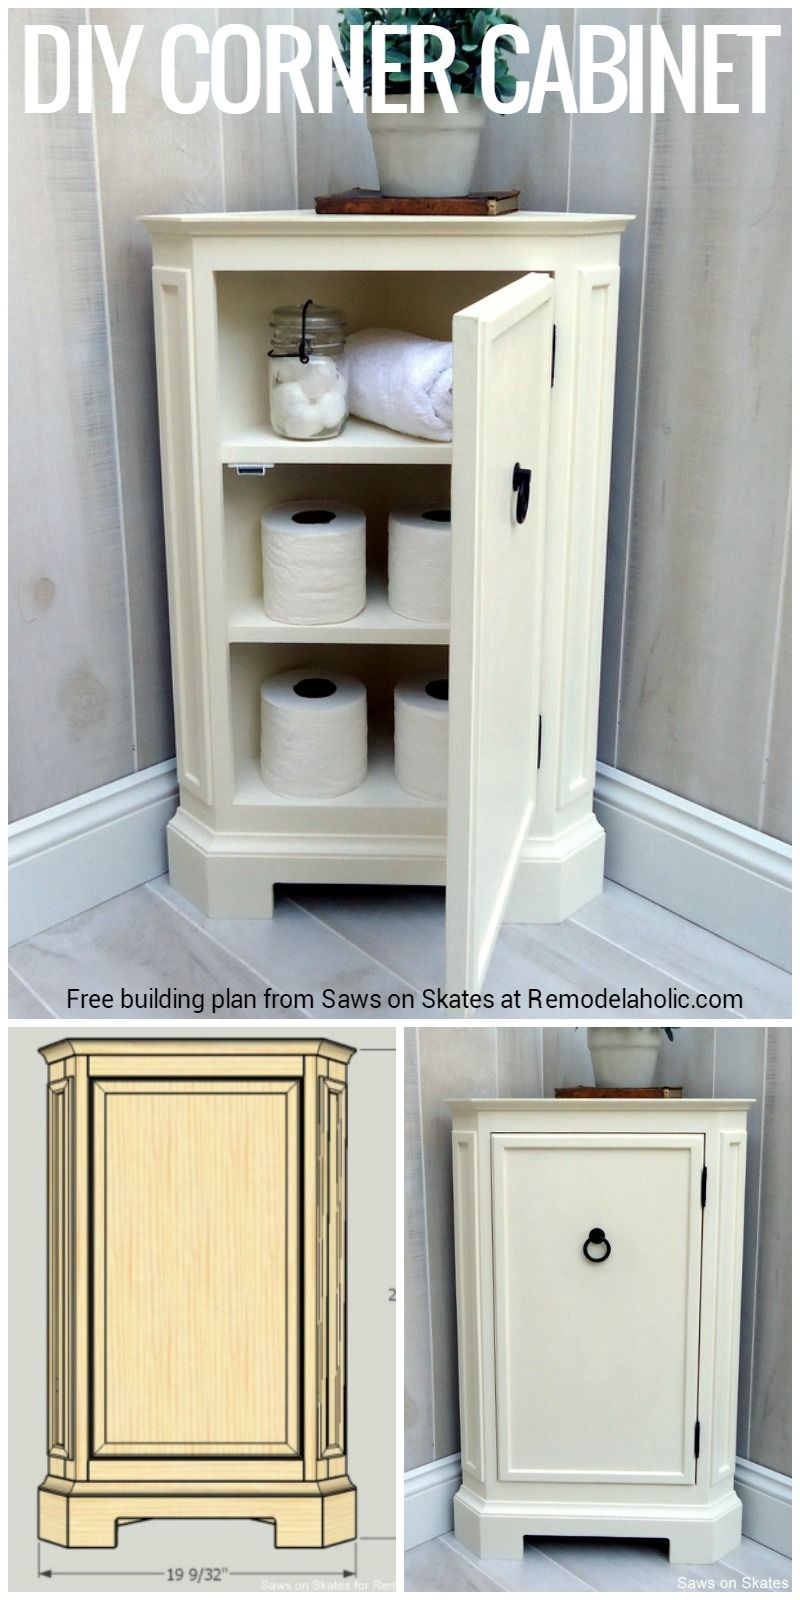 Build this space-smart corner cabinet with the free building plans